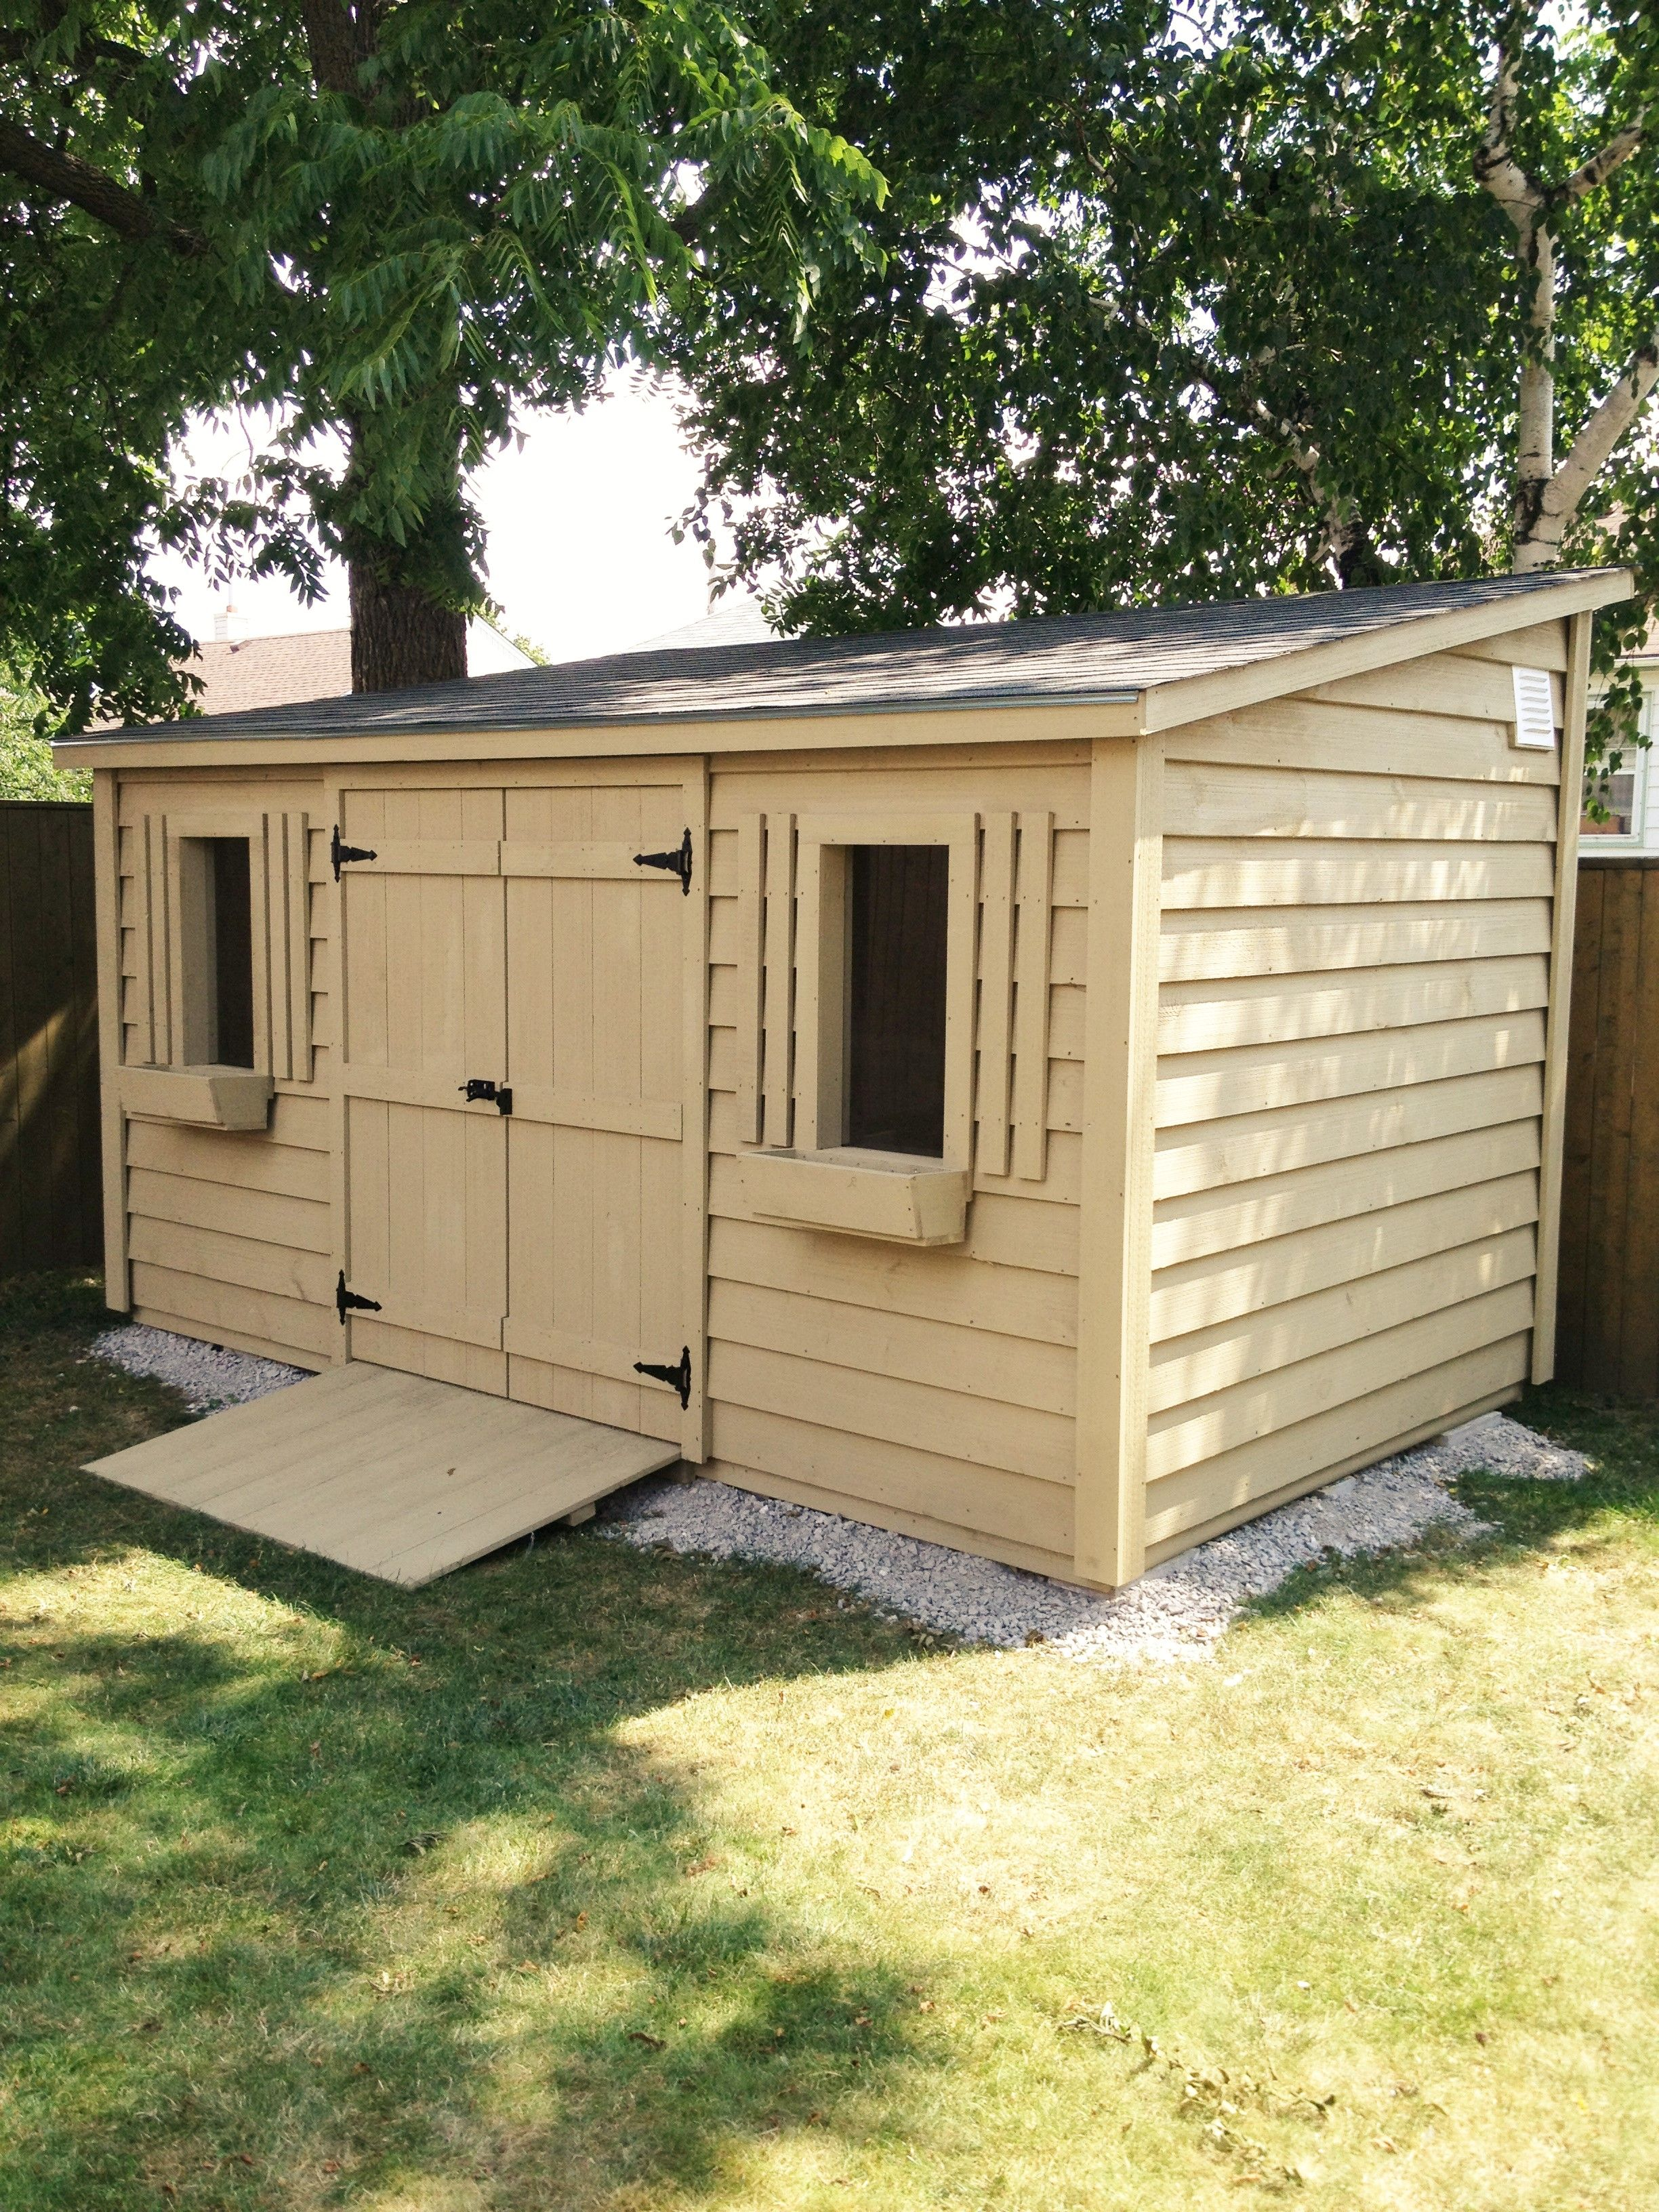 Garden Sheds 8 X 16 8x16 lean up shed with 5ft.double door and two windows. the stain